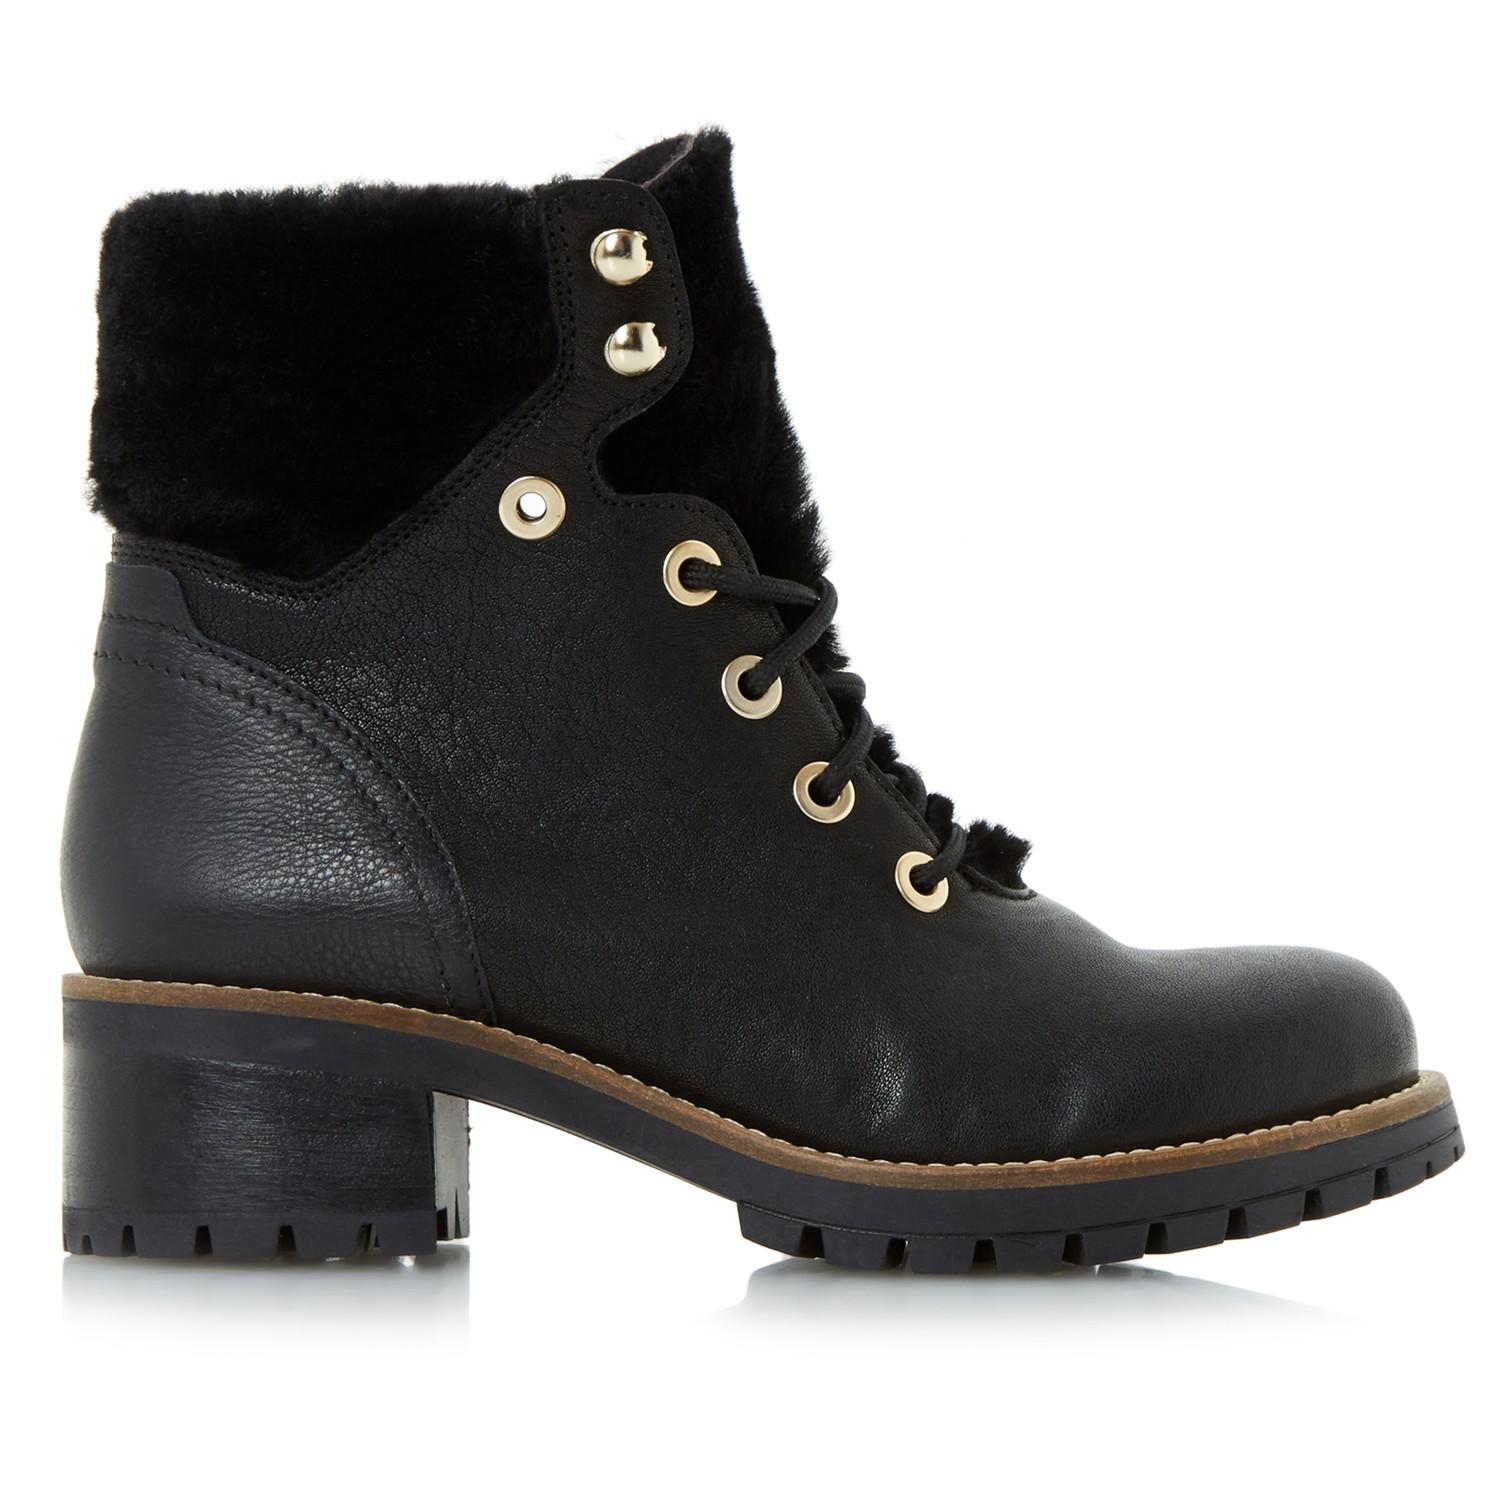 Dune Leather Rochelle Lace Up Ankle Boots in Black